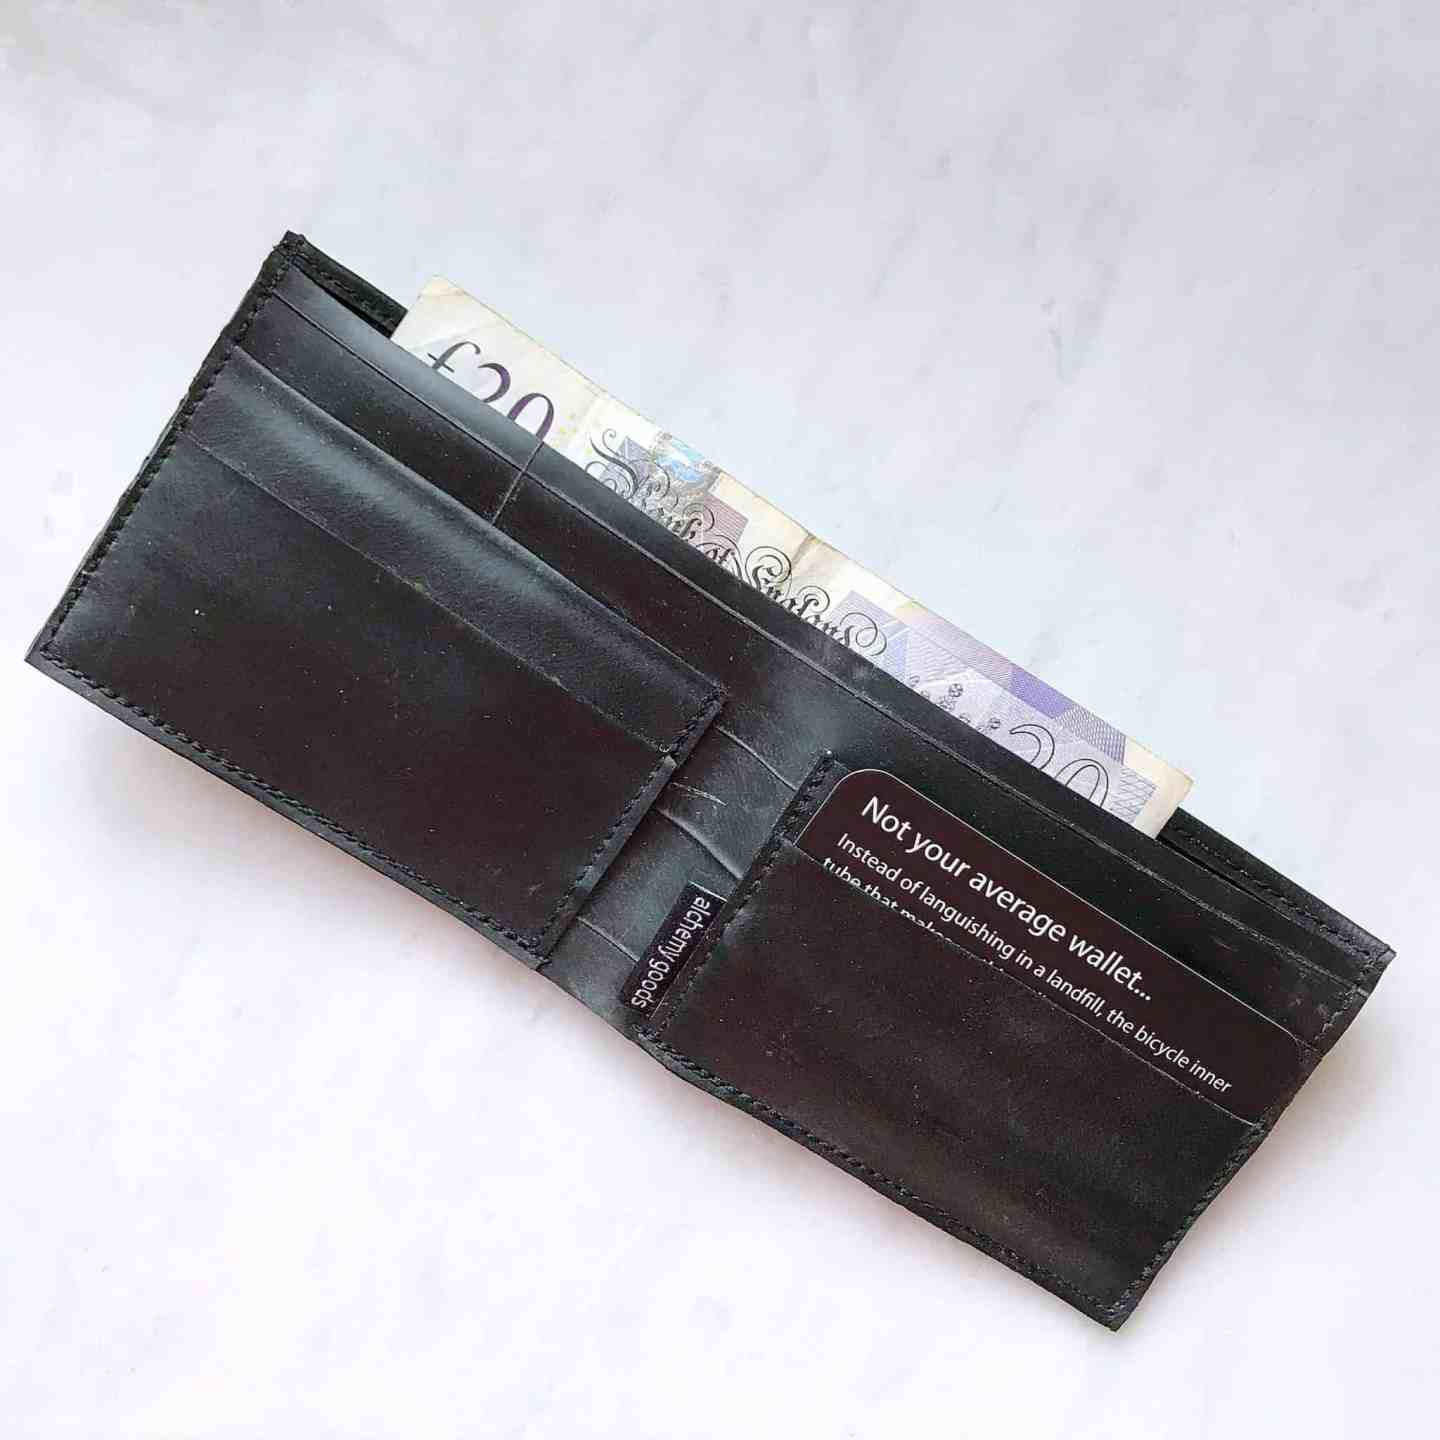 Alchemy Goods men's wallet made from recycled inner tubes - the perfect ethical gift for him